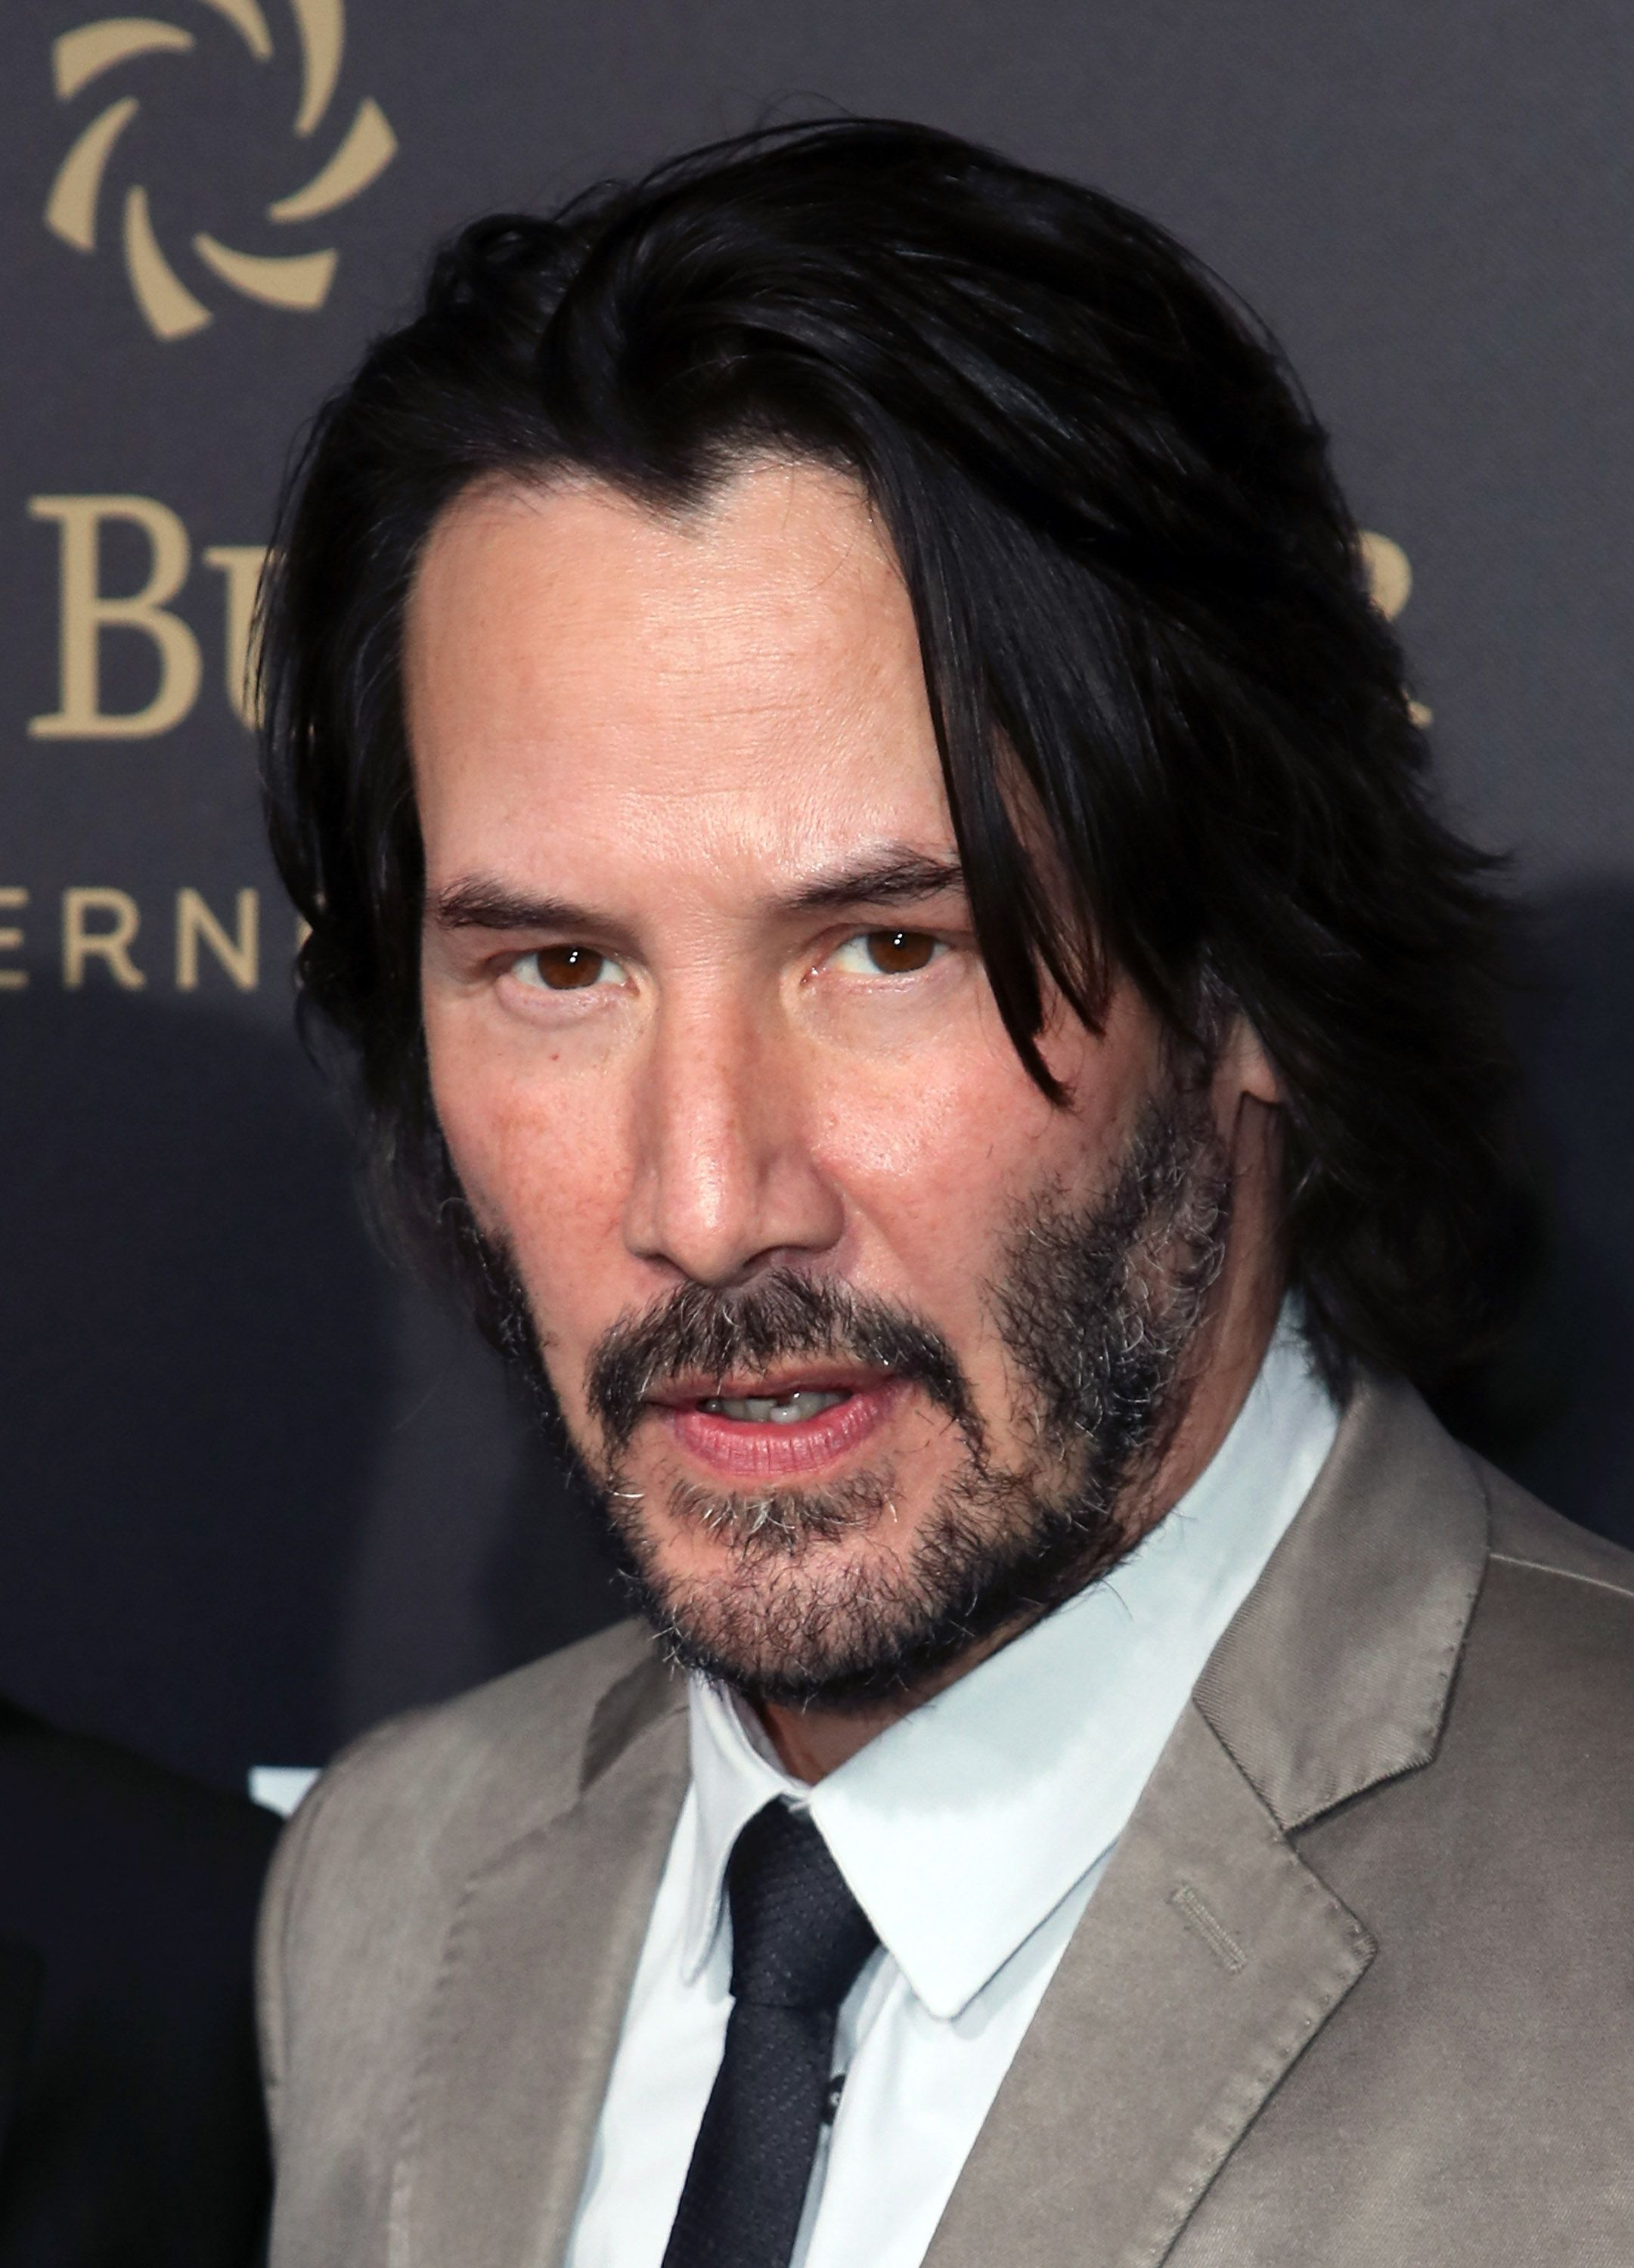 """Keanu Reeves at the premiere of """"John Wick: Chapter Two"""" on January 30, 2017, in Hollywood, California   Photo: David Livingston/Getty Images"""